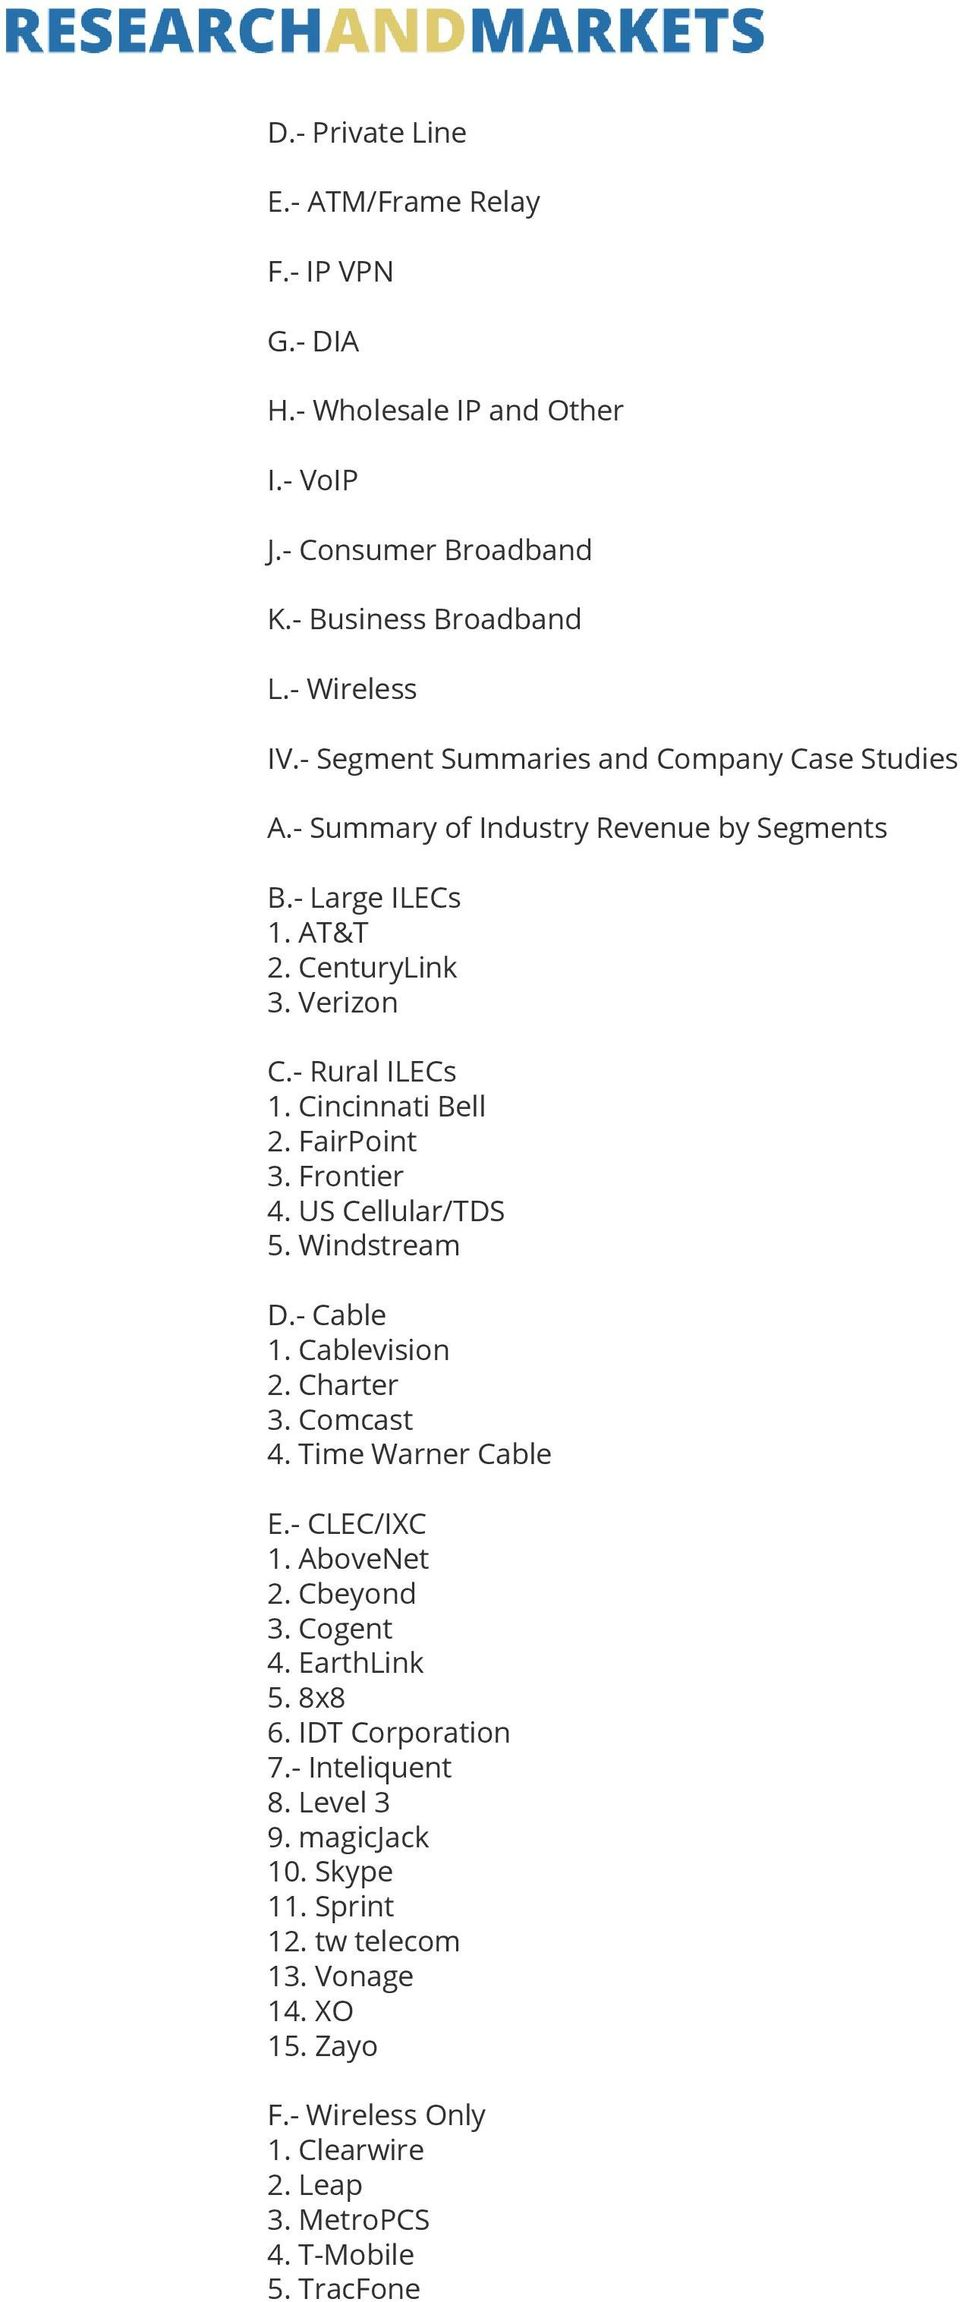 FairPoint 3. Frontier 4. US Cellular/TDS 5. Windstream D.- Cable 1. Cablevision 2. Charter 3. Comcast 4. Time Warner Cable E.- CLEC/IXC 1. AboveNet 2. Cbeyond 3. Cogent 4.